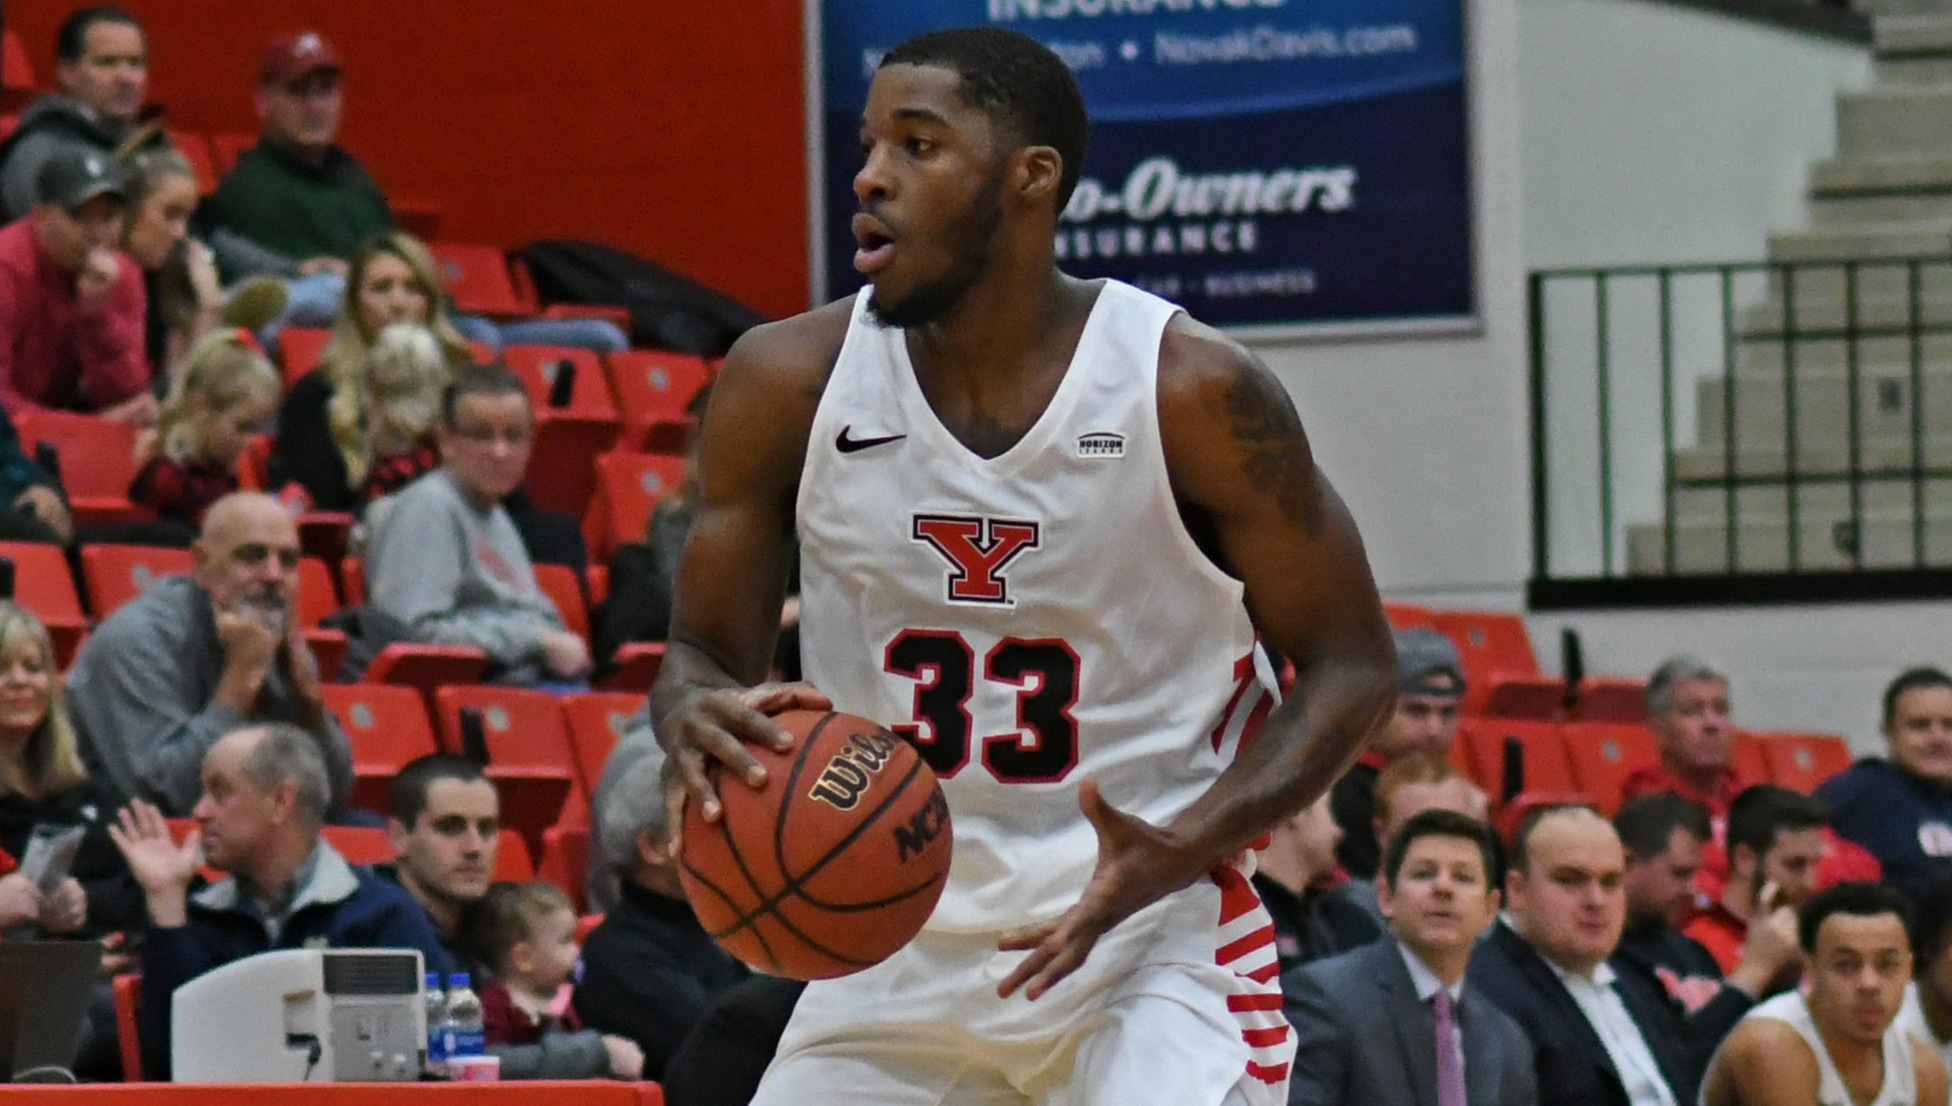 Naz Bohannon (Photo by Robert Hayes)